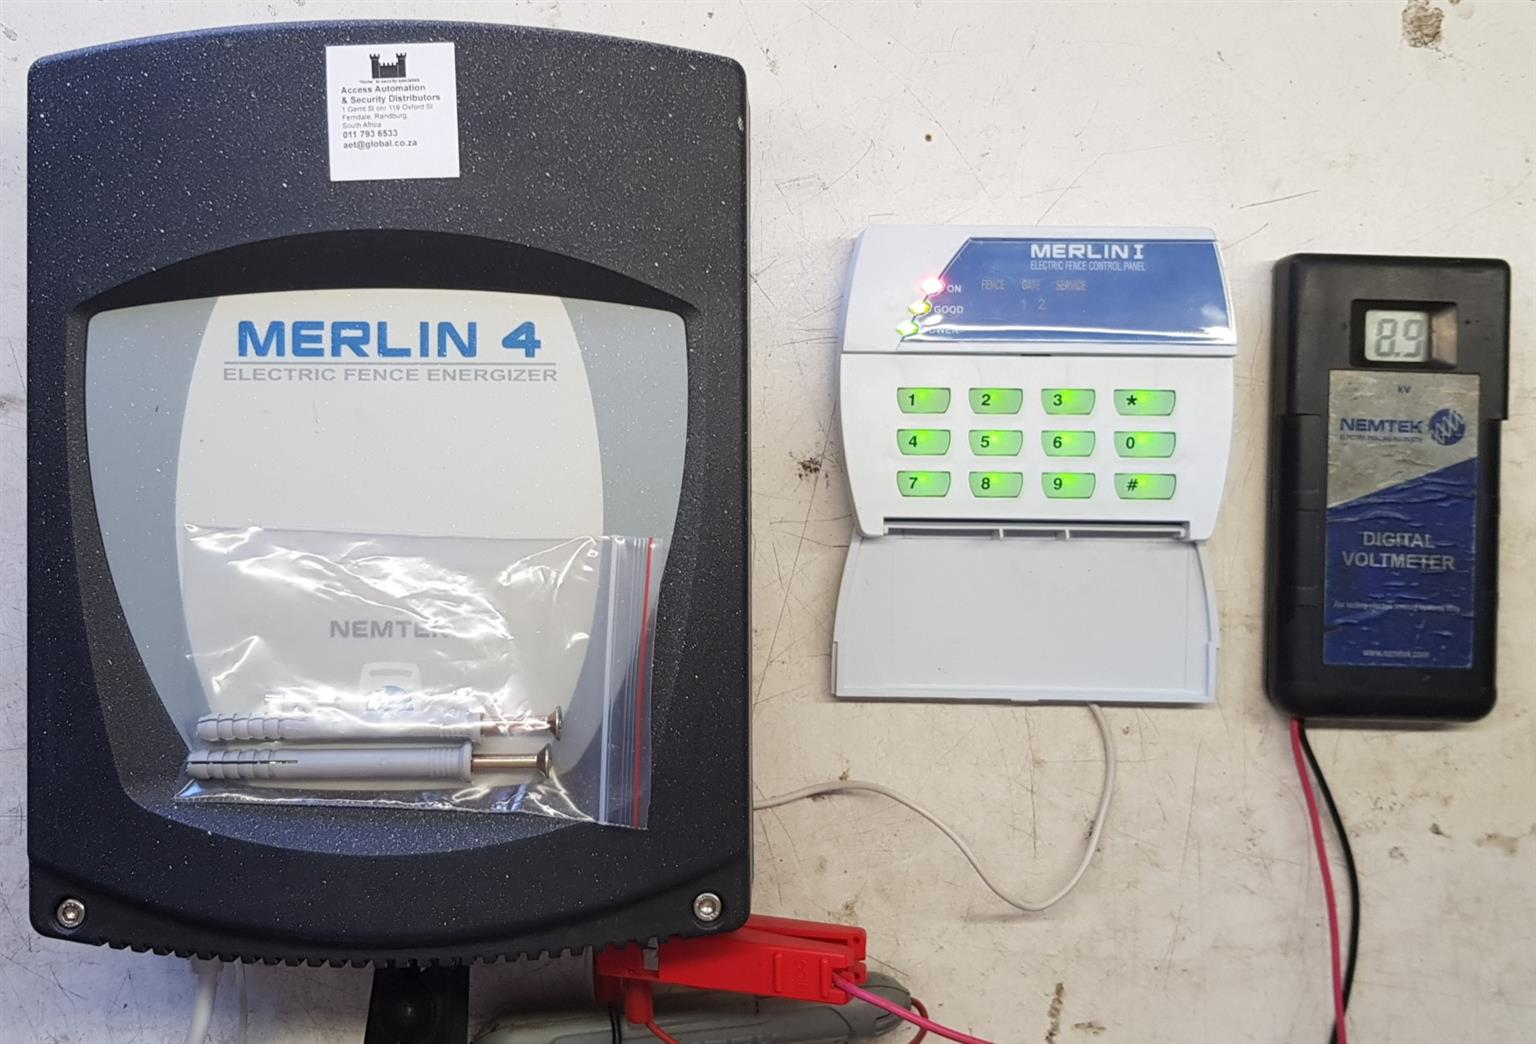 Merlin 4 Electric Fence Wiring Diagram Charger Junk Mailrhjunkmailcoza